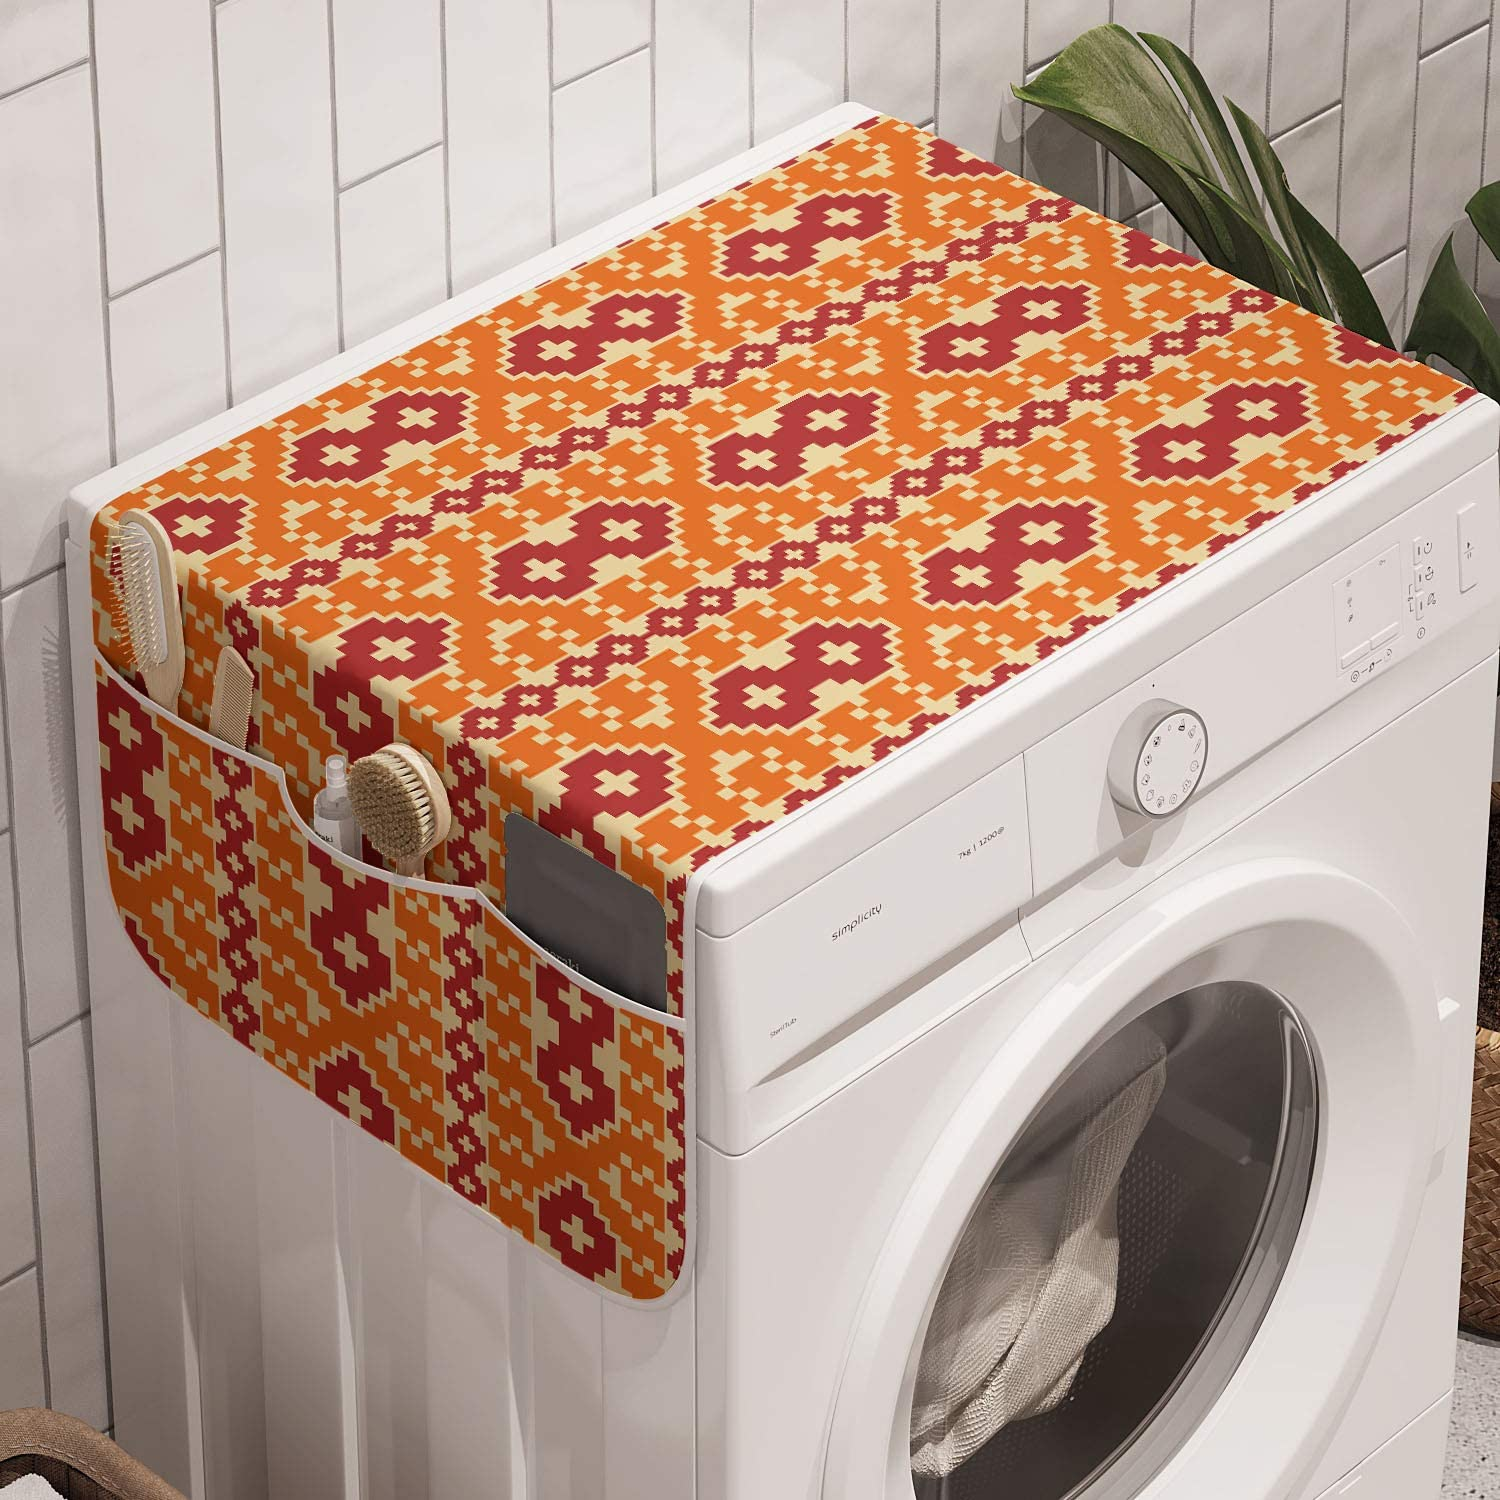 Vermilion Pale Yellow Lunarable Boho Orange Washing Machine Organizer 47 x 18.5 Traditional Arrangement with Pixel Art Classic Qualities Anti-slip Fabric Top Cover for Washer Dryer